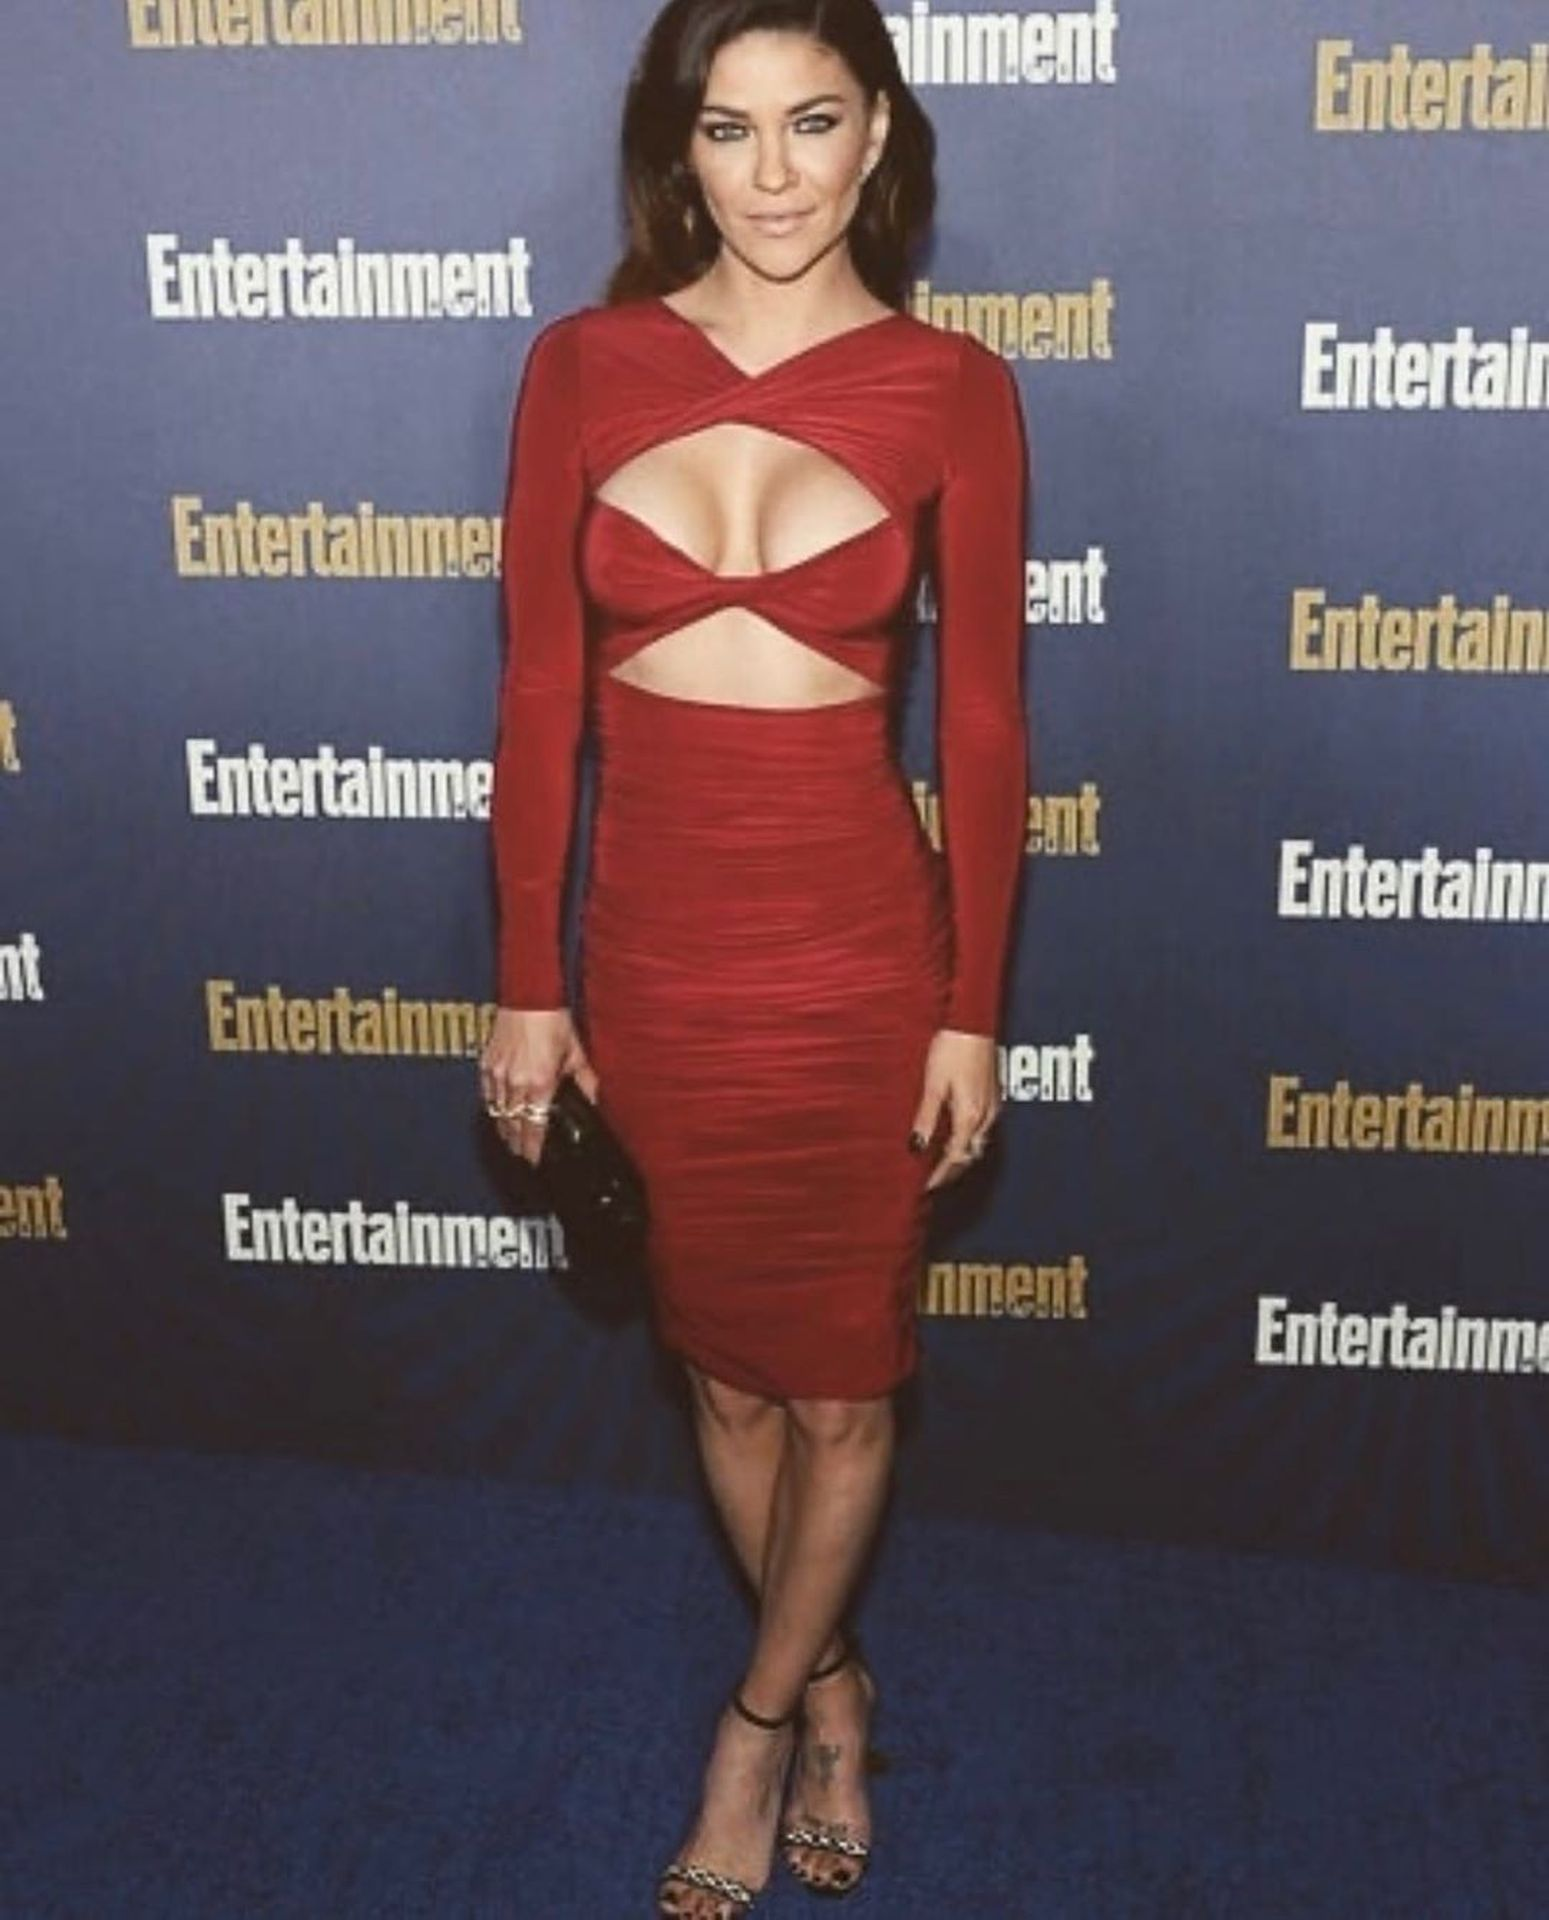 Jessica Szohr Shows Her Cleavage At The Entertainment Weekly Pre Sag Awards Celebration 0025